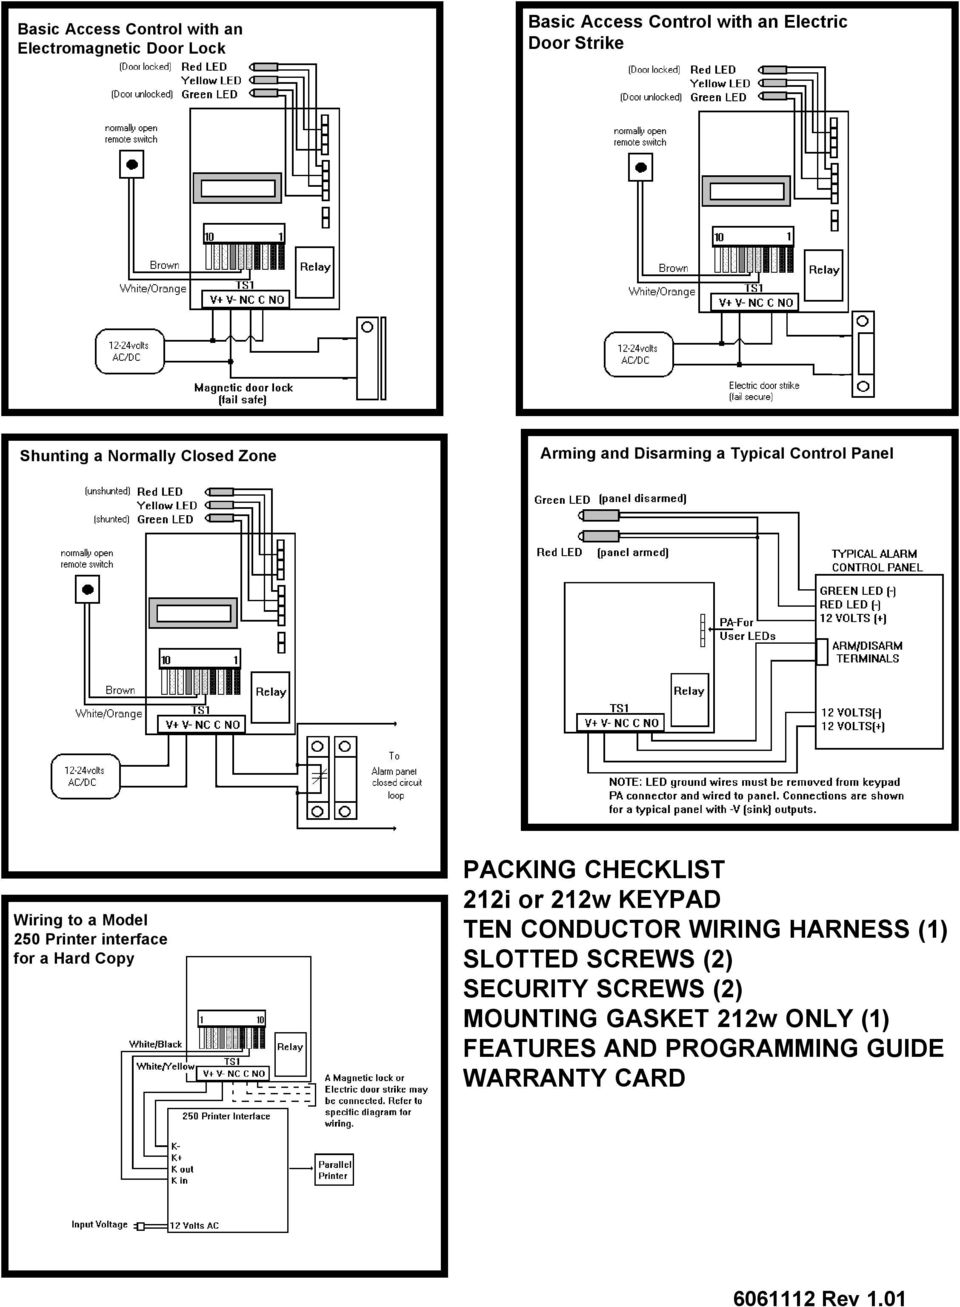 medium resolution of interface for a hard copy packing checklist 212i or 212w keypad ten conductor wiring harness